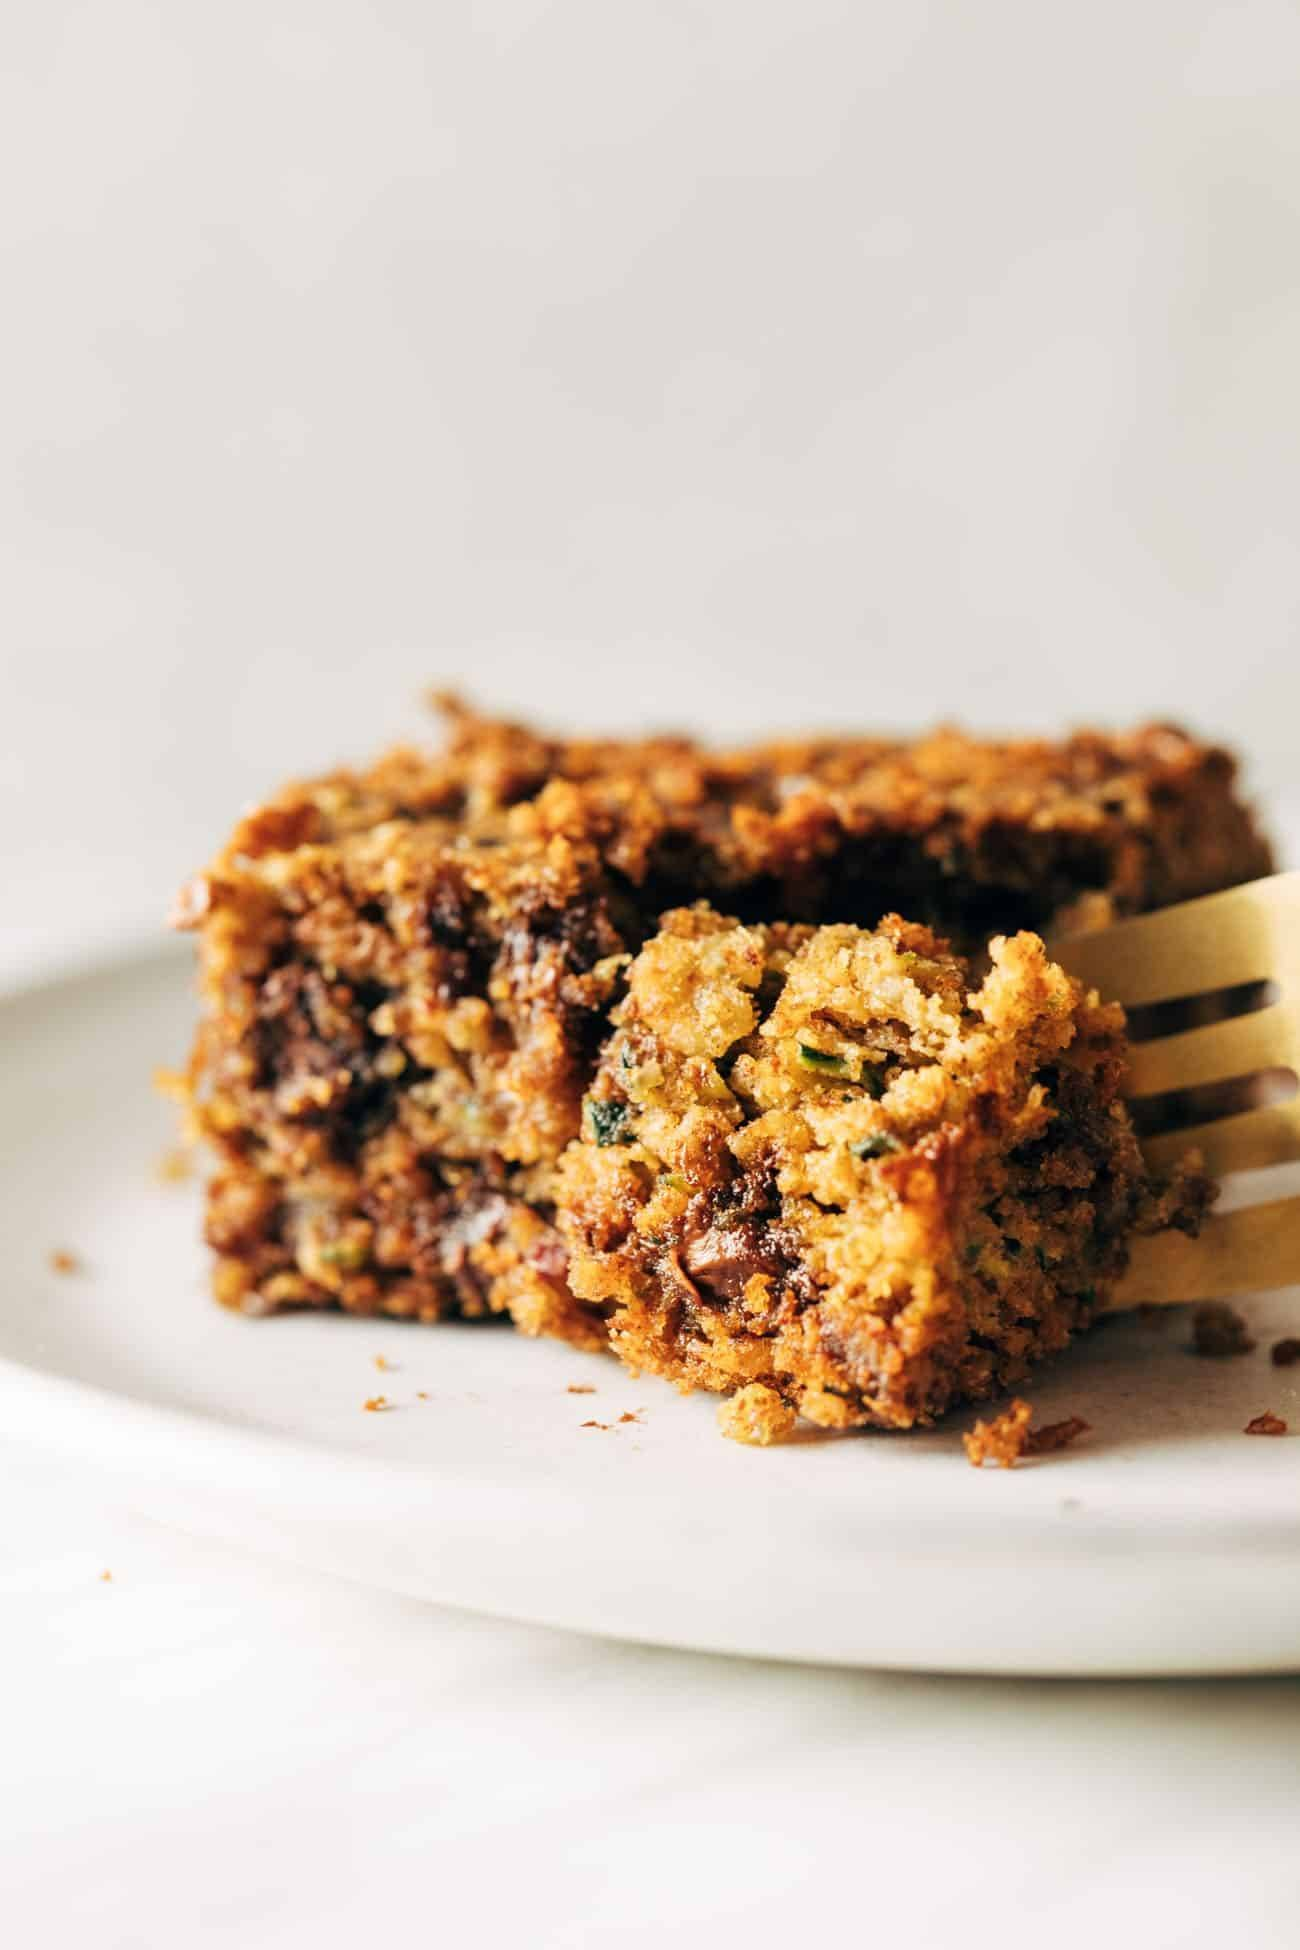 Almond butter chocolate chip zucchini bar on a white plate being cut into with a fork.